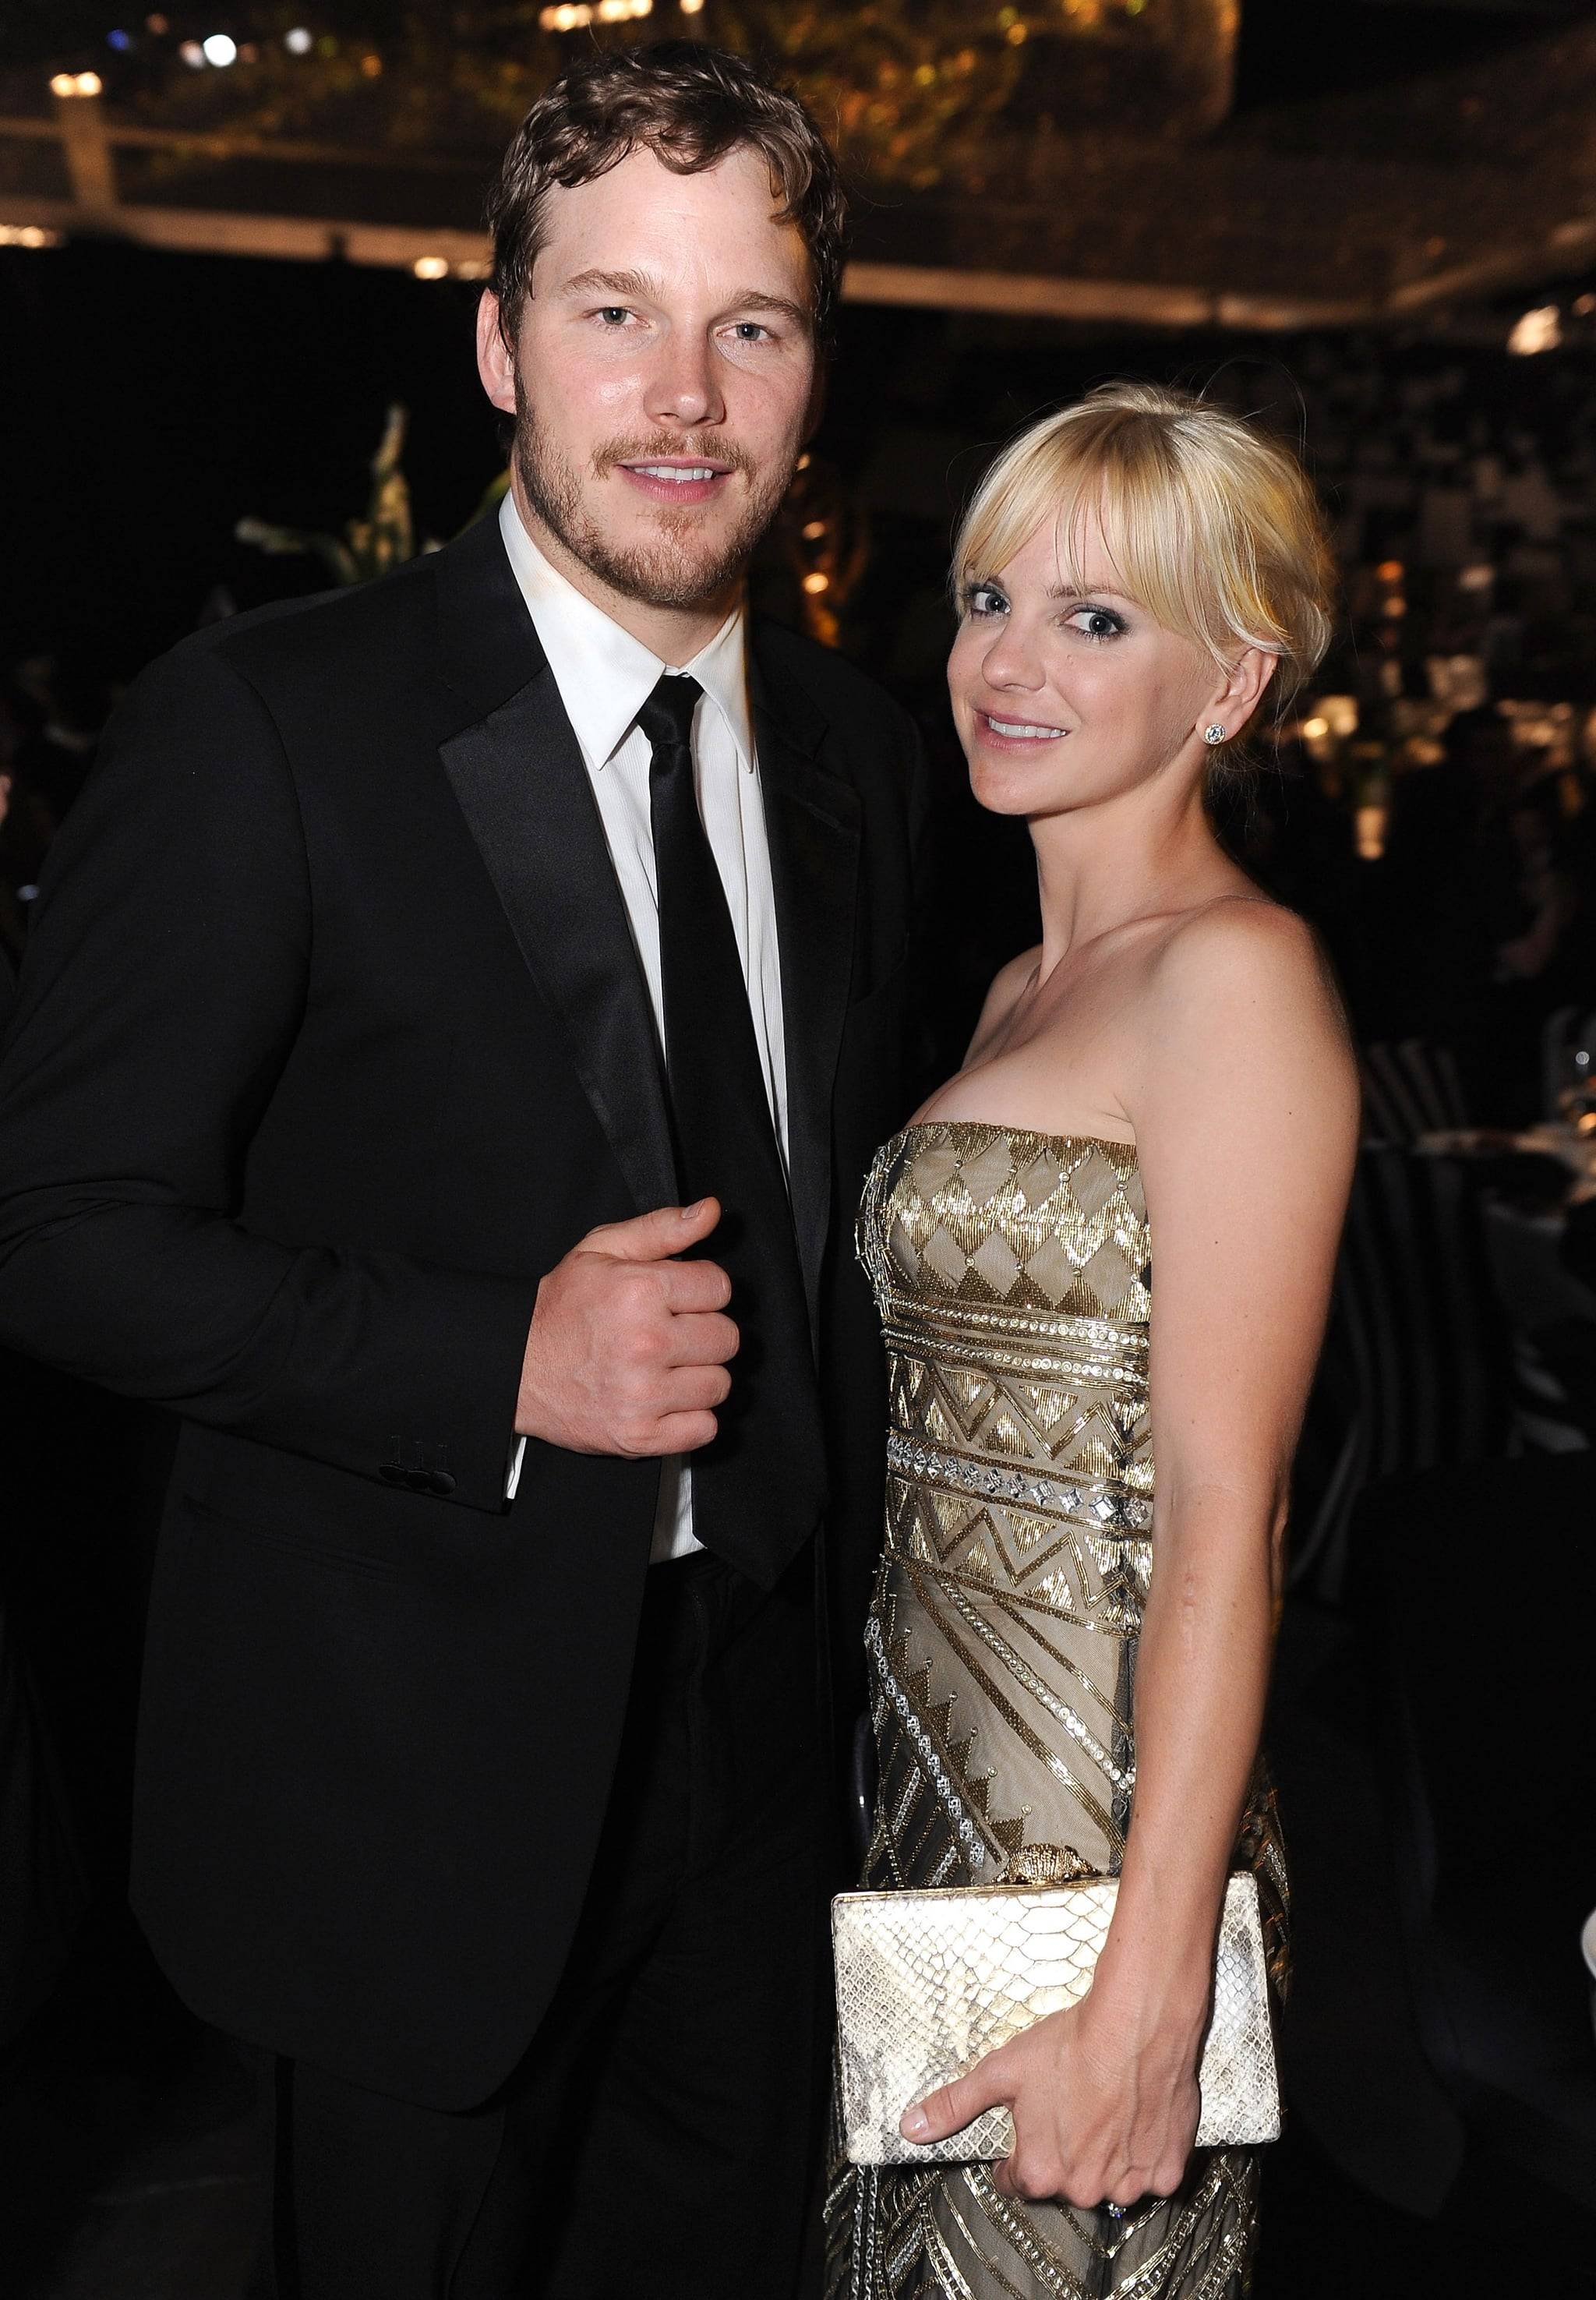 Chris Pratt and Anna Faris at the Emmy's Governor's Ball.